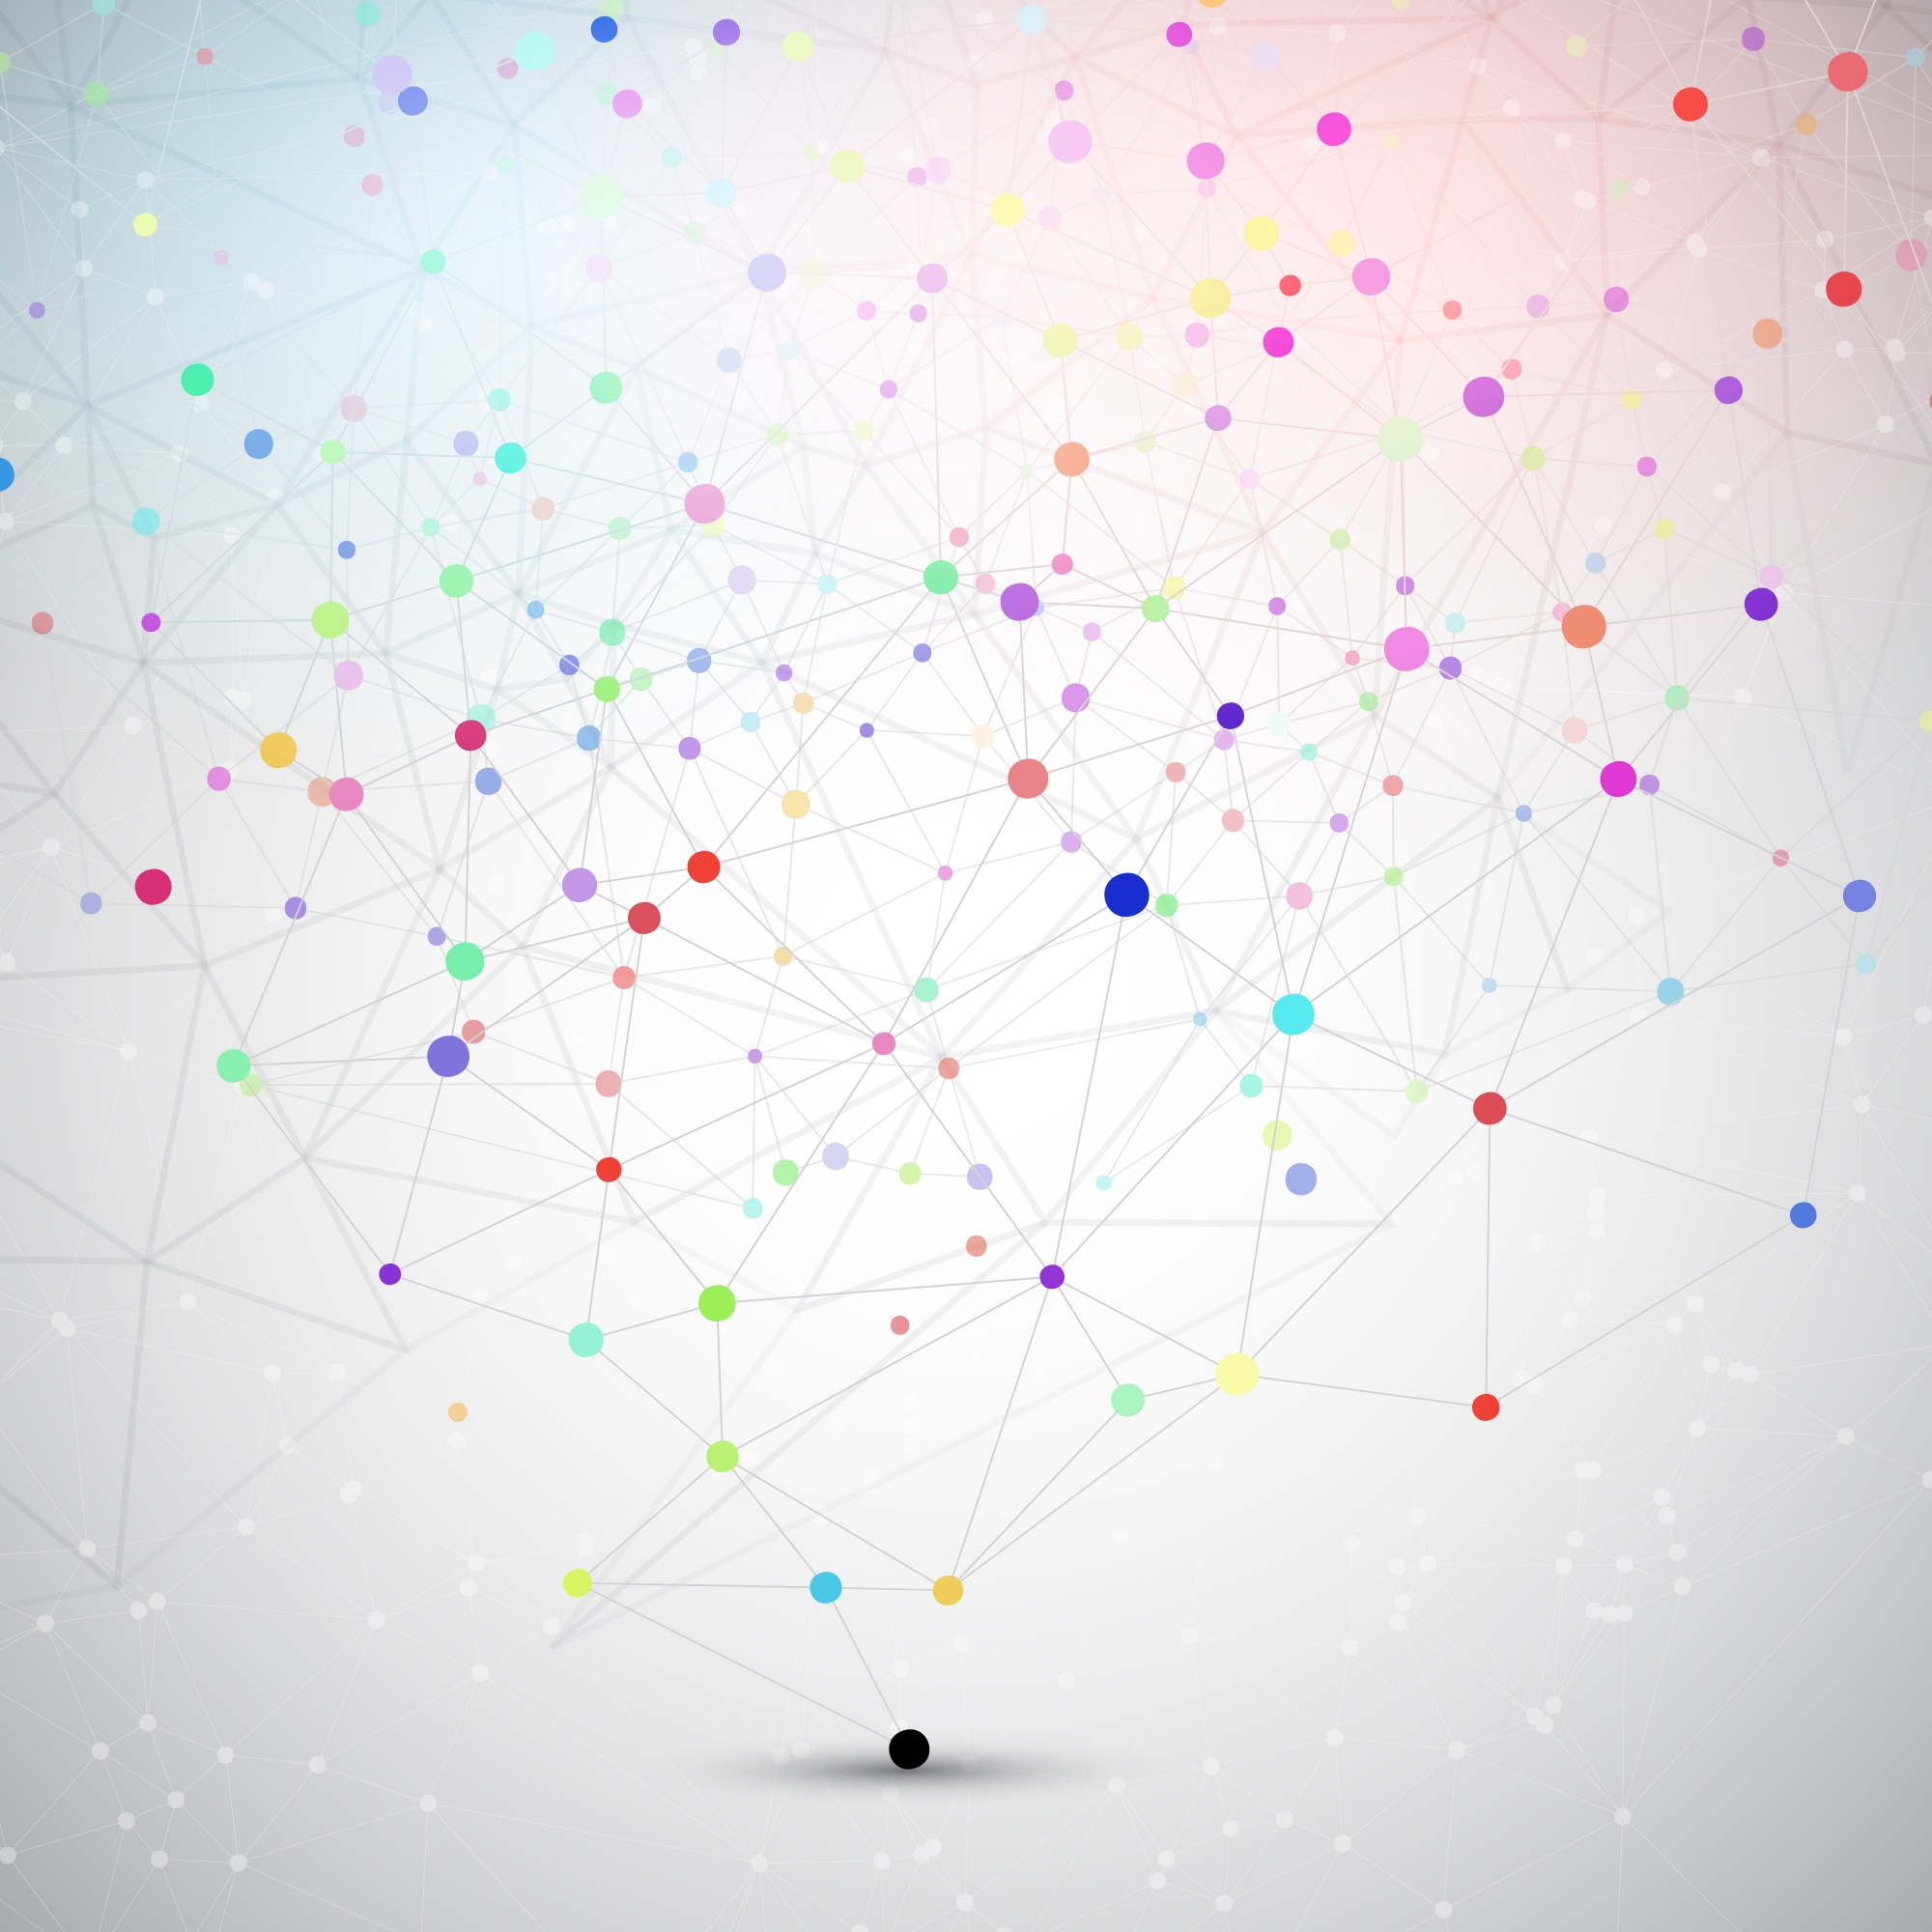 Abstract background with connecting dots and lines